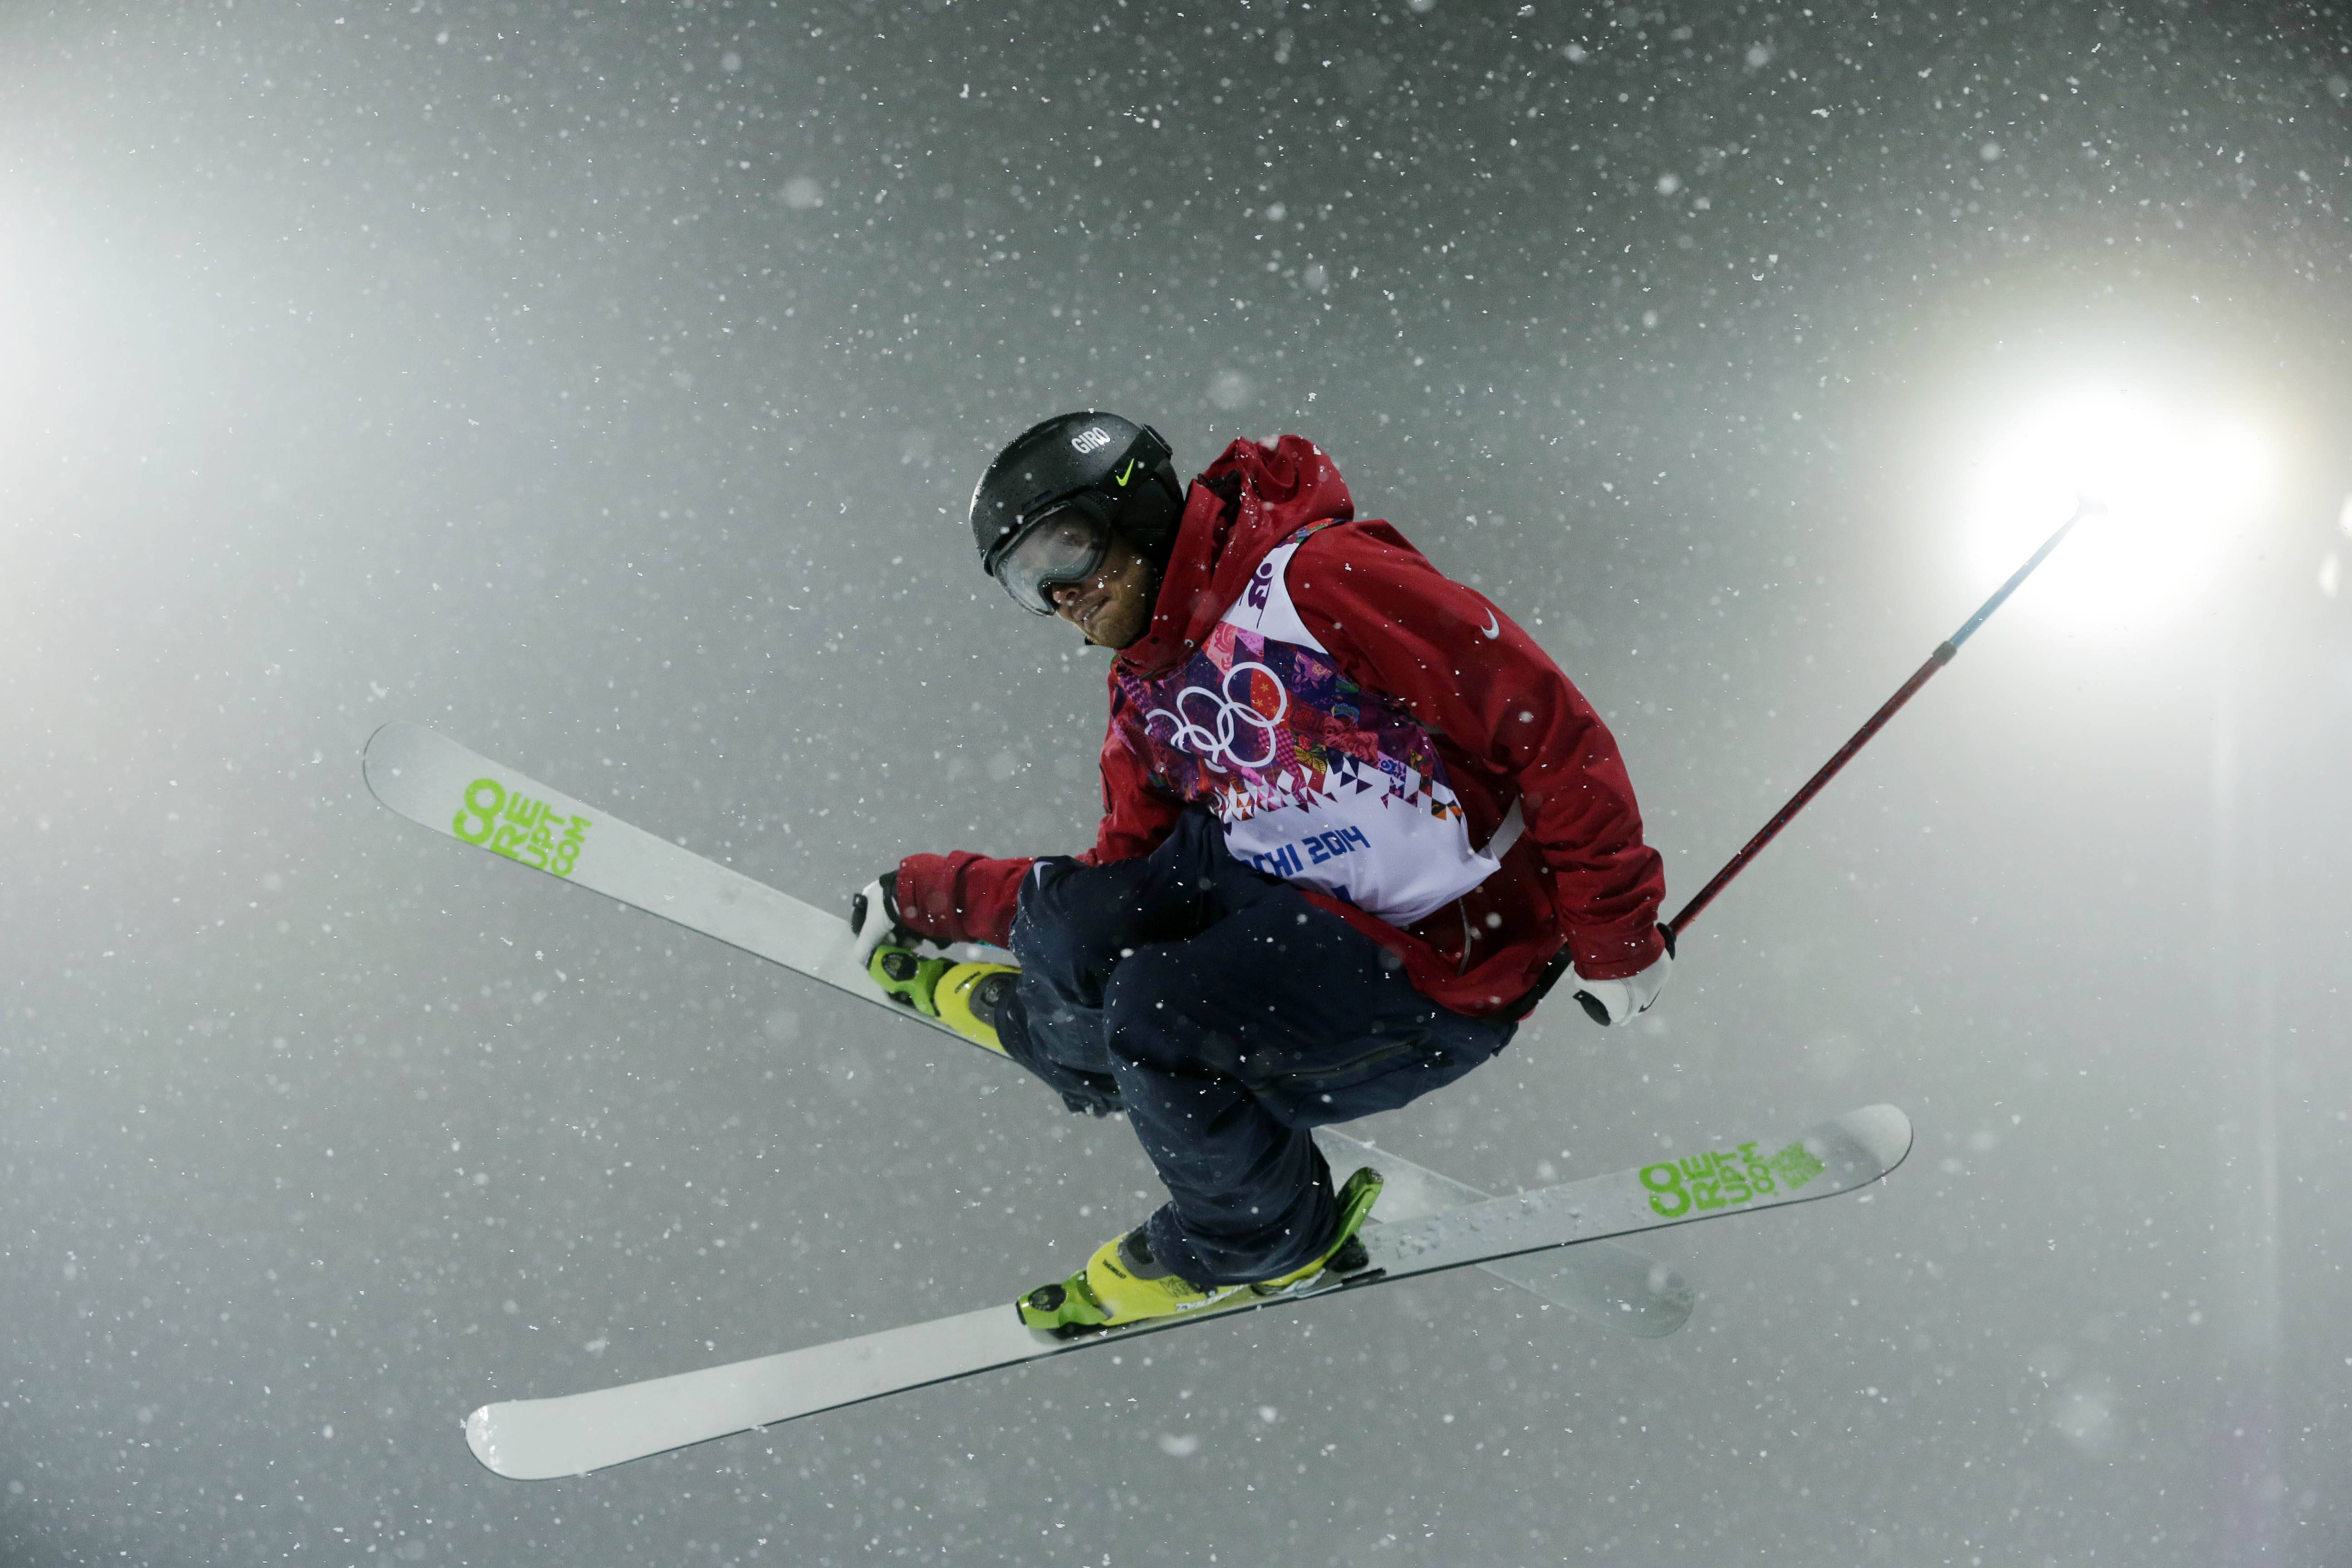 Bronze medalist Kevin Rolland of France gets air during the men's ski halfpipe final.